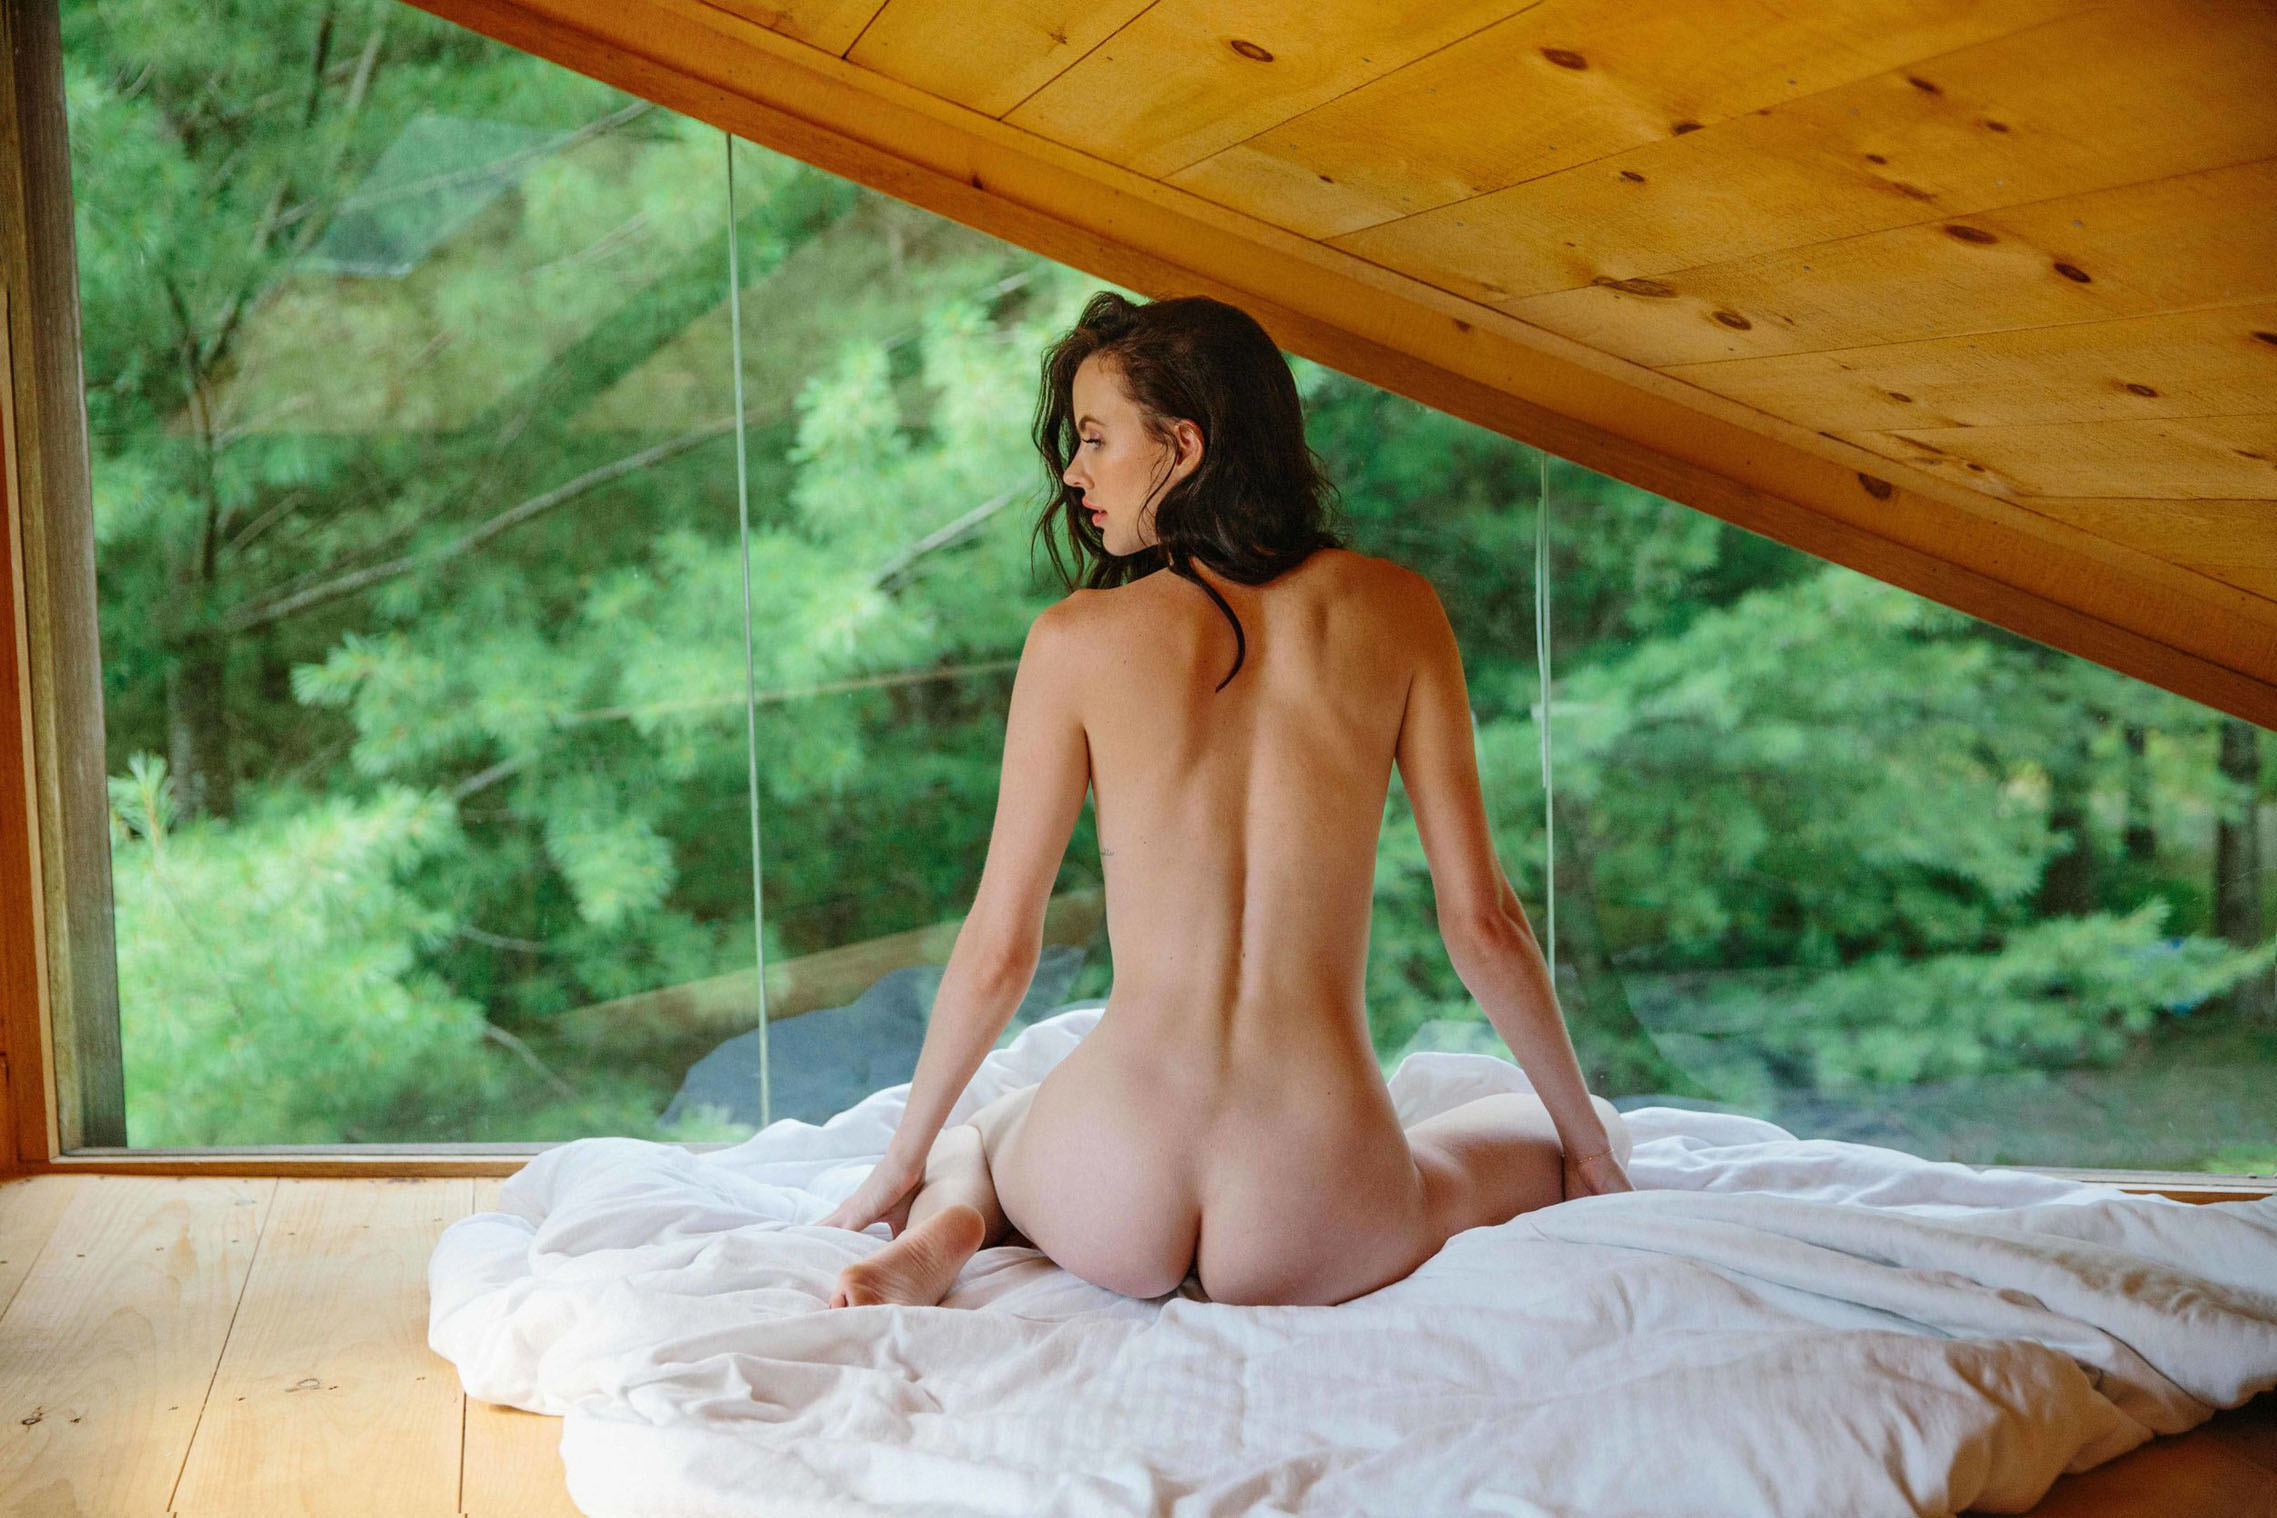 Lauren Buys nude in Treehouse by Jen Senn